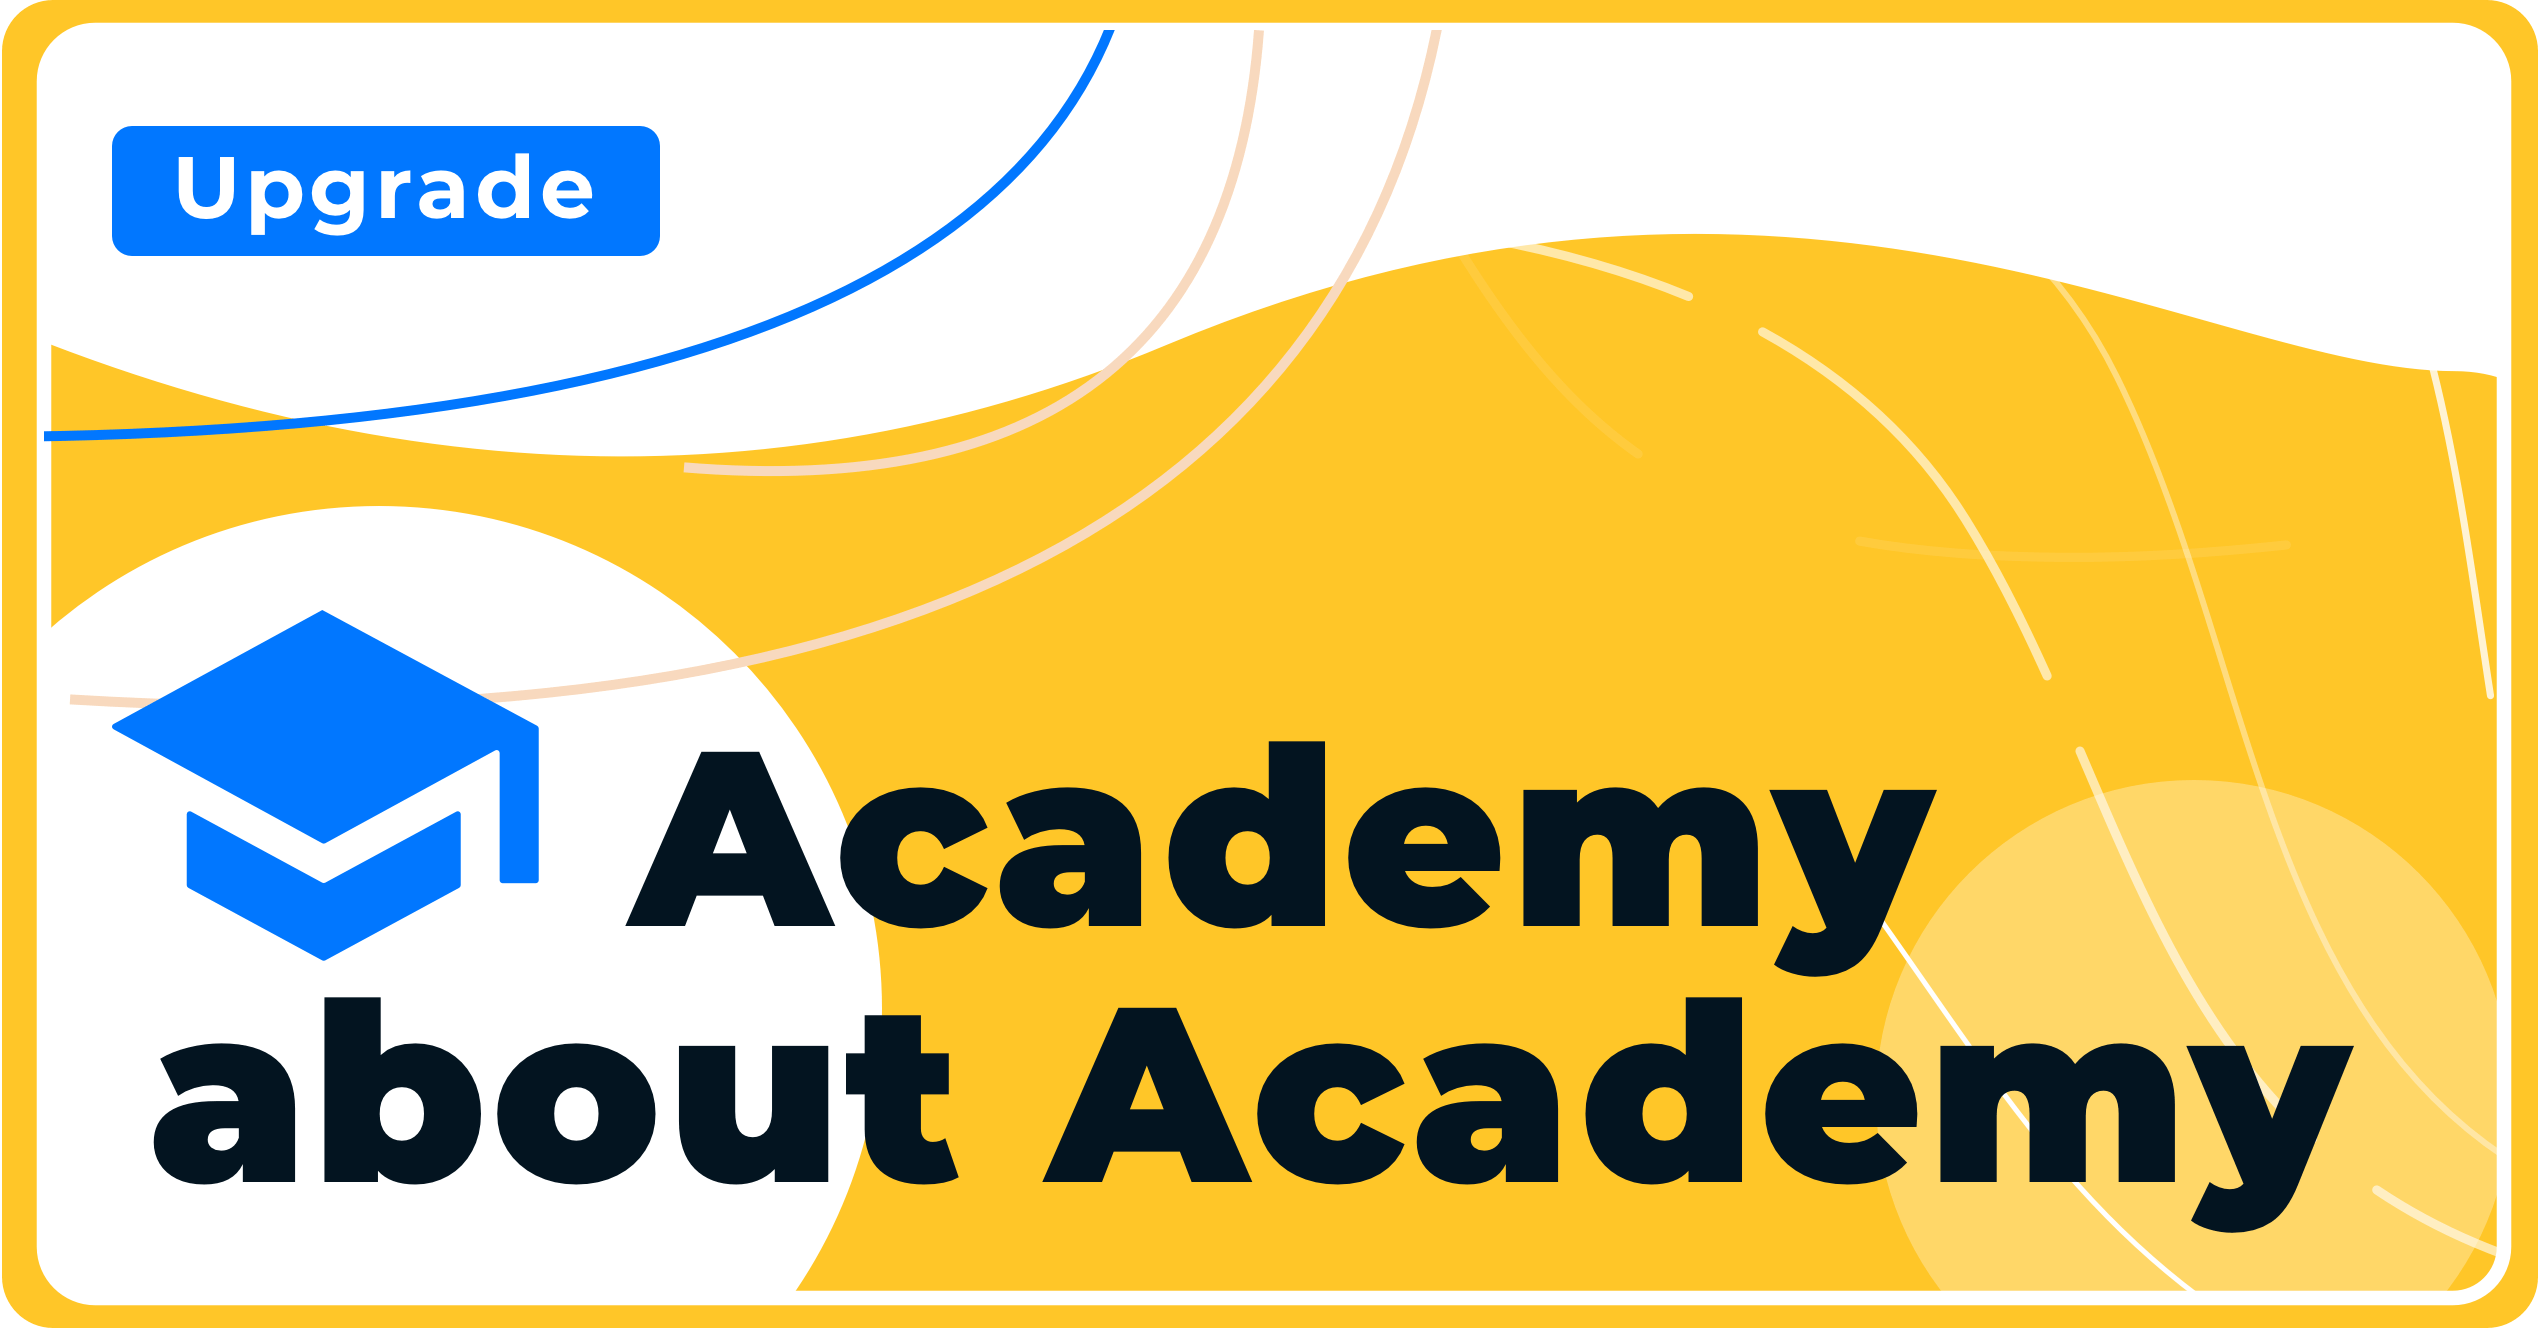 Academy about Academies